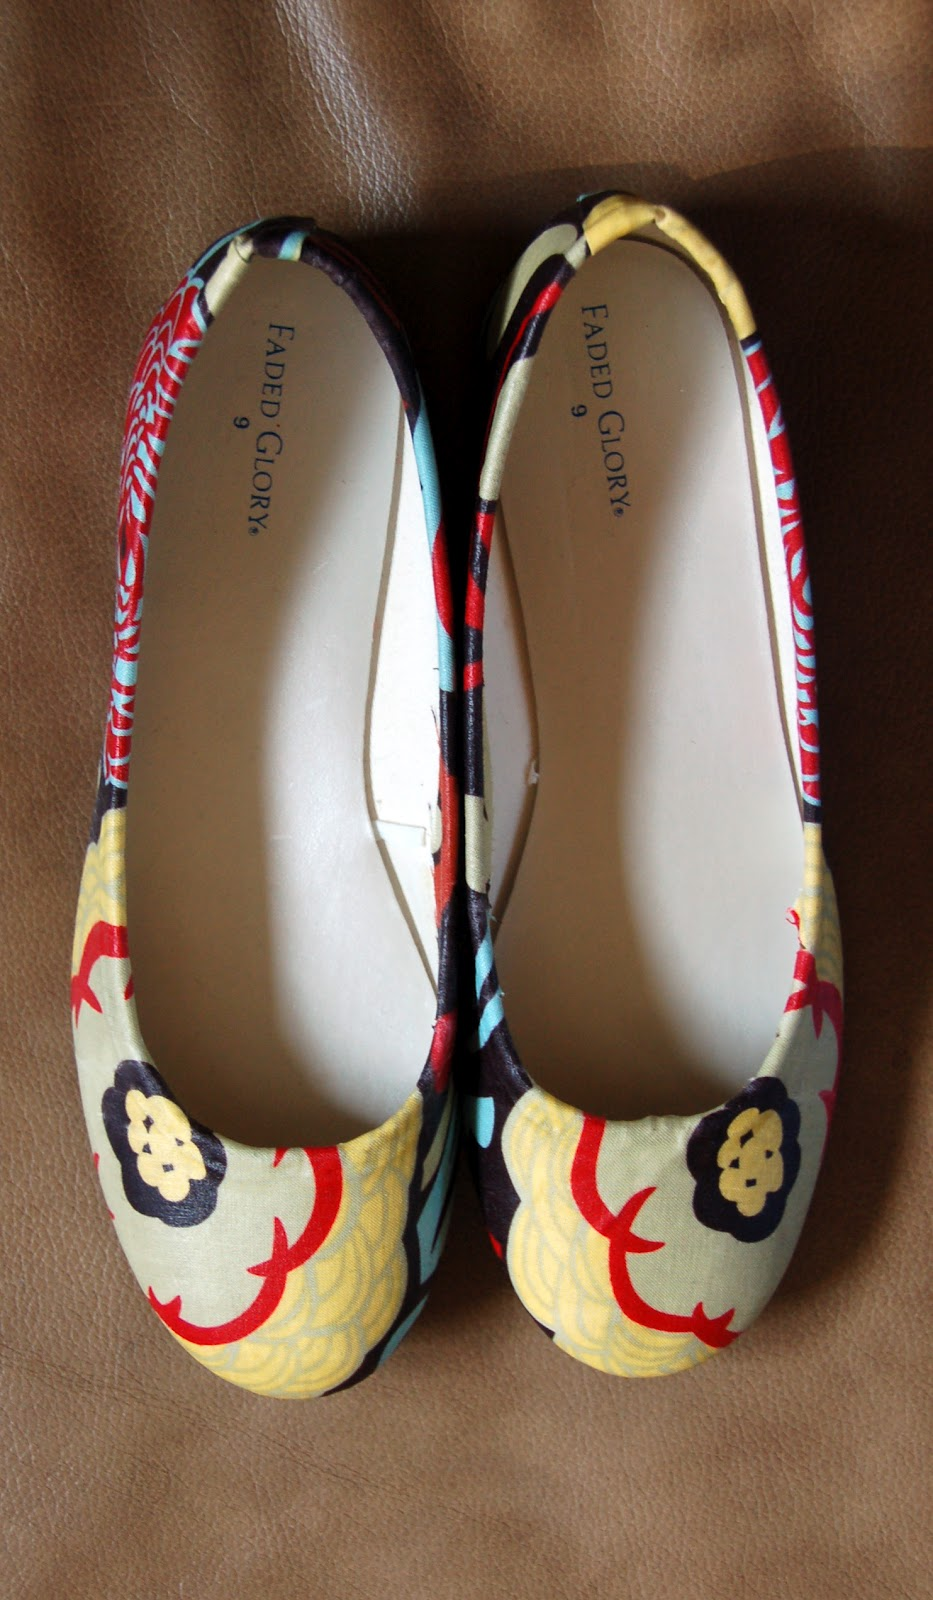 e420a09b42d1c The Almost Perfectionist  Fabric Covered Shoes